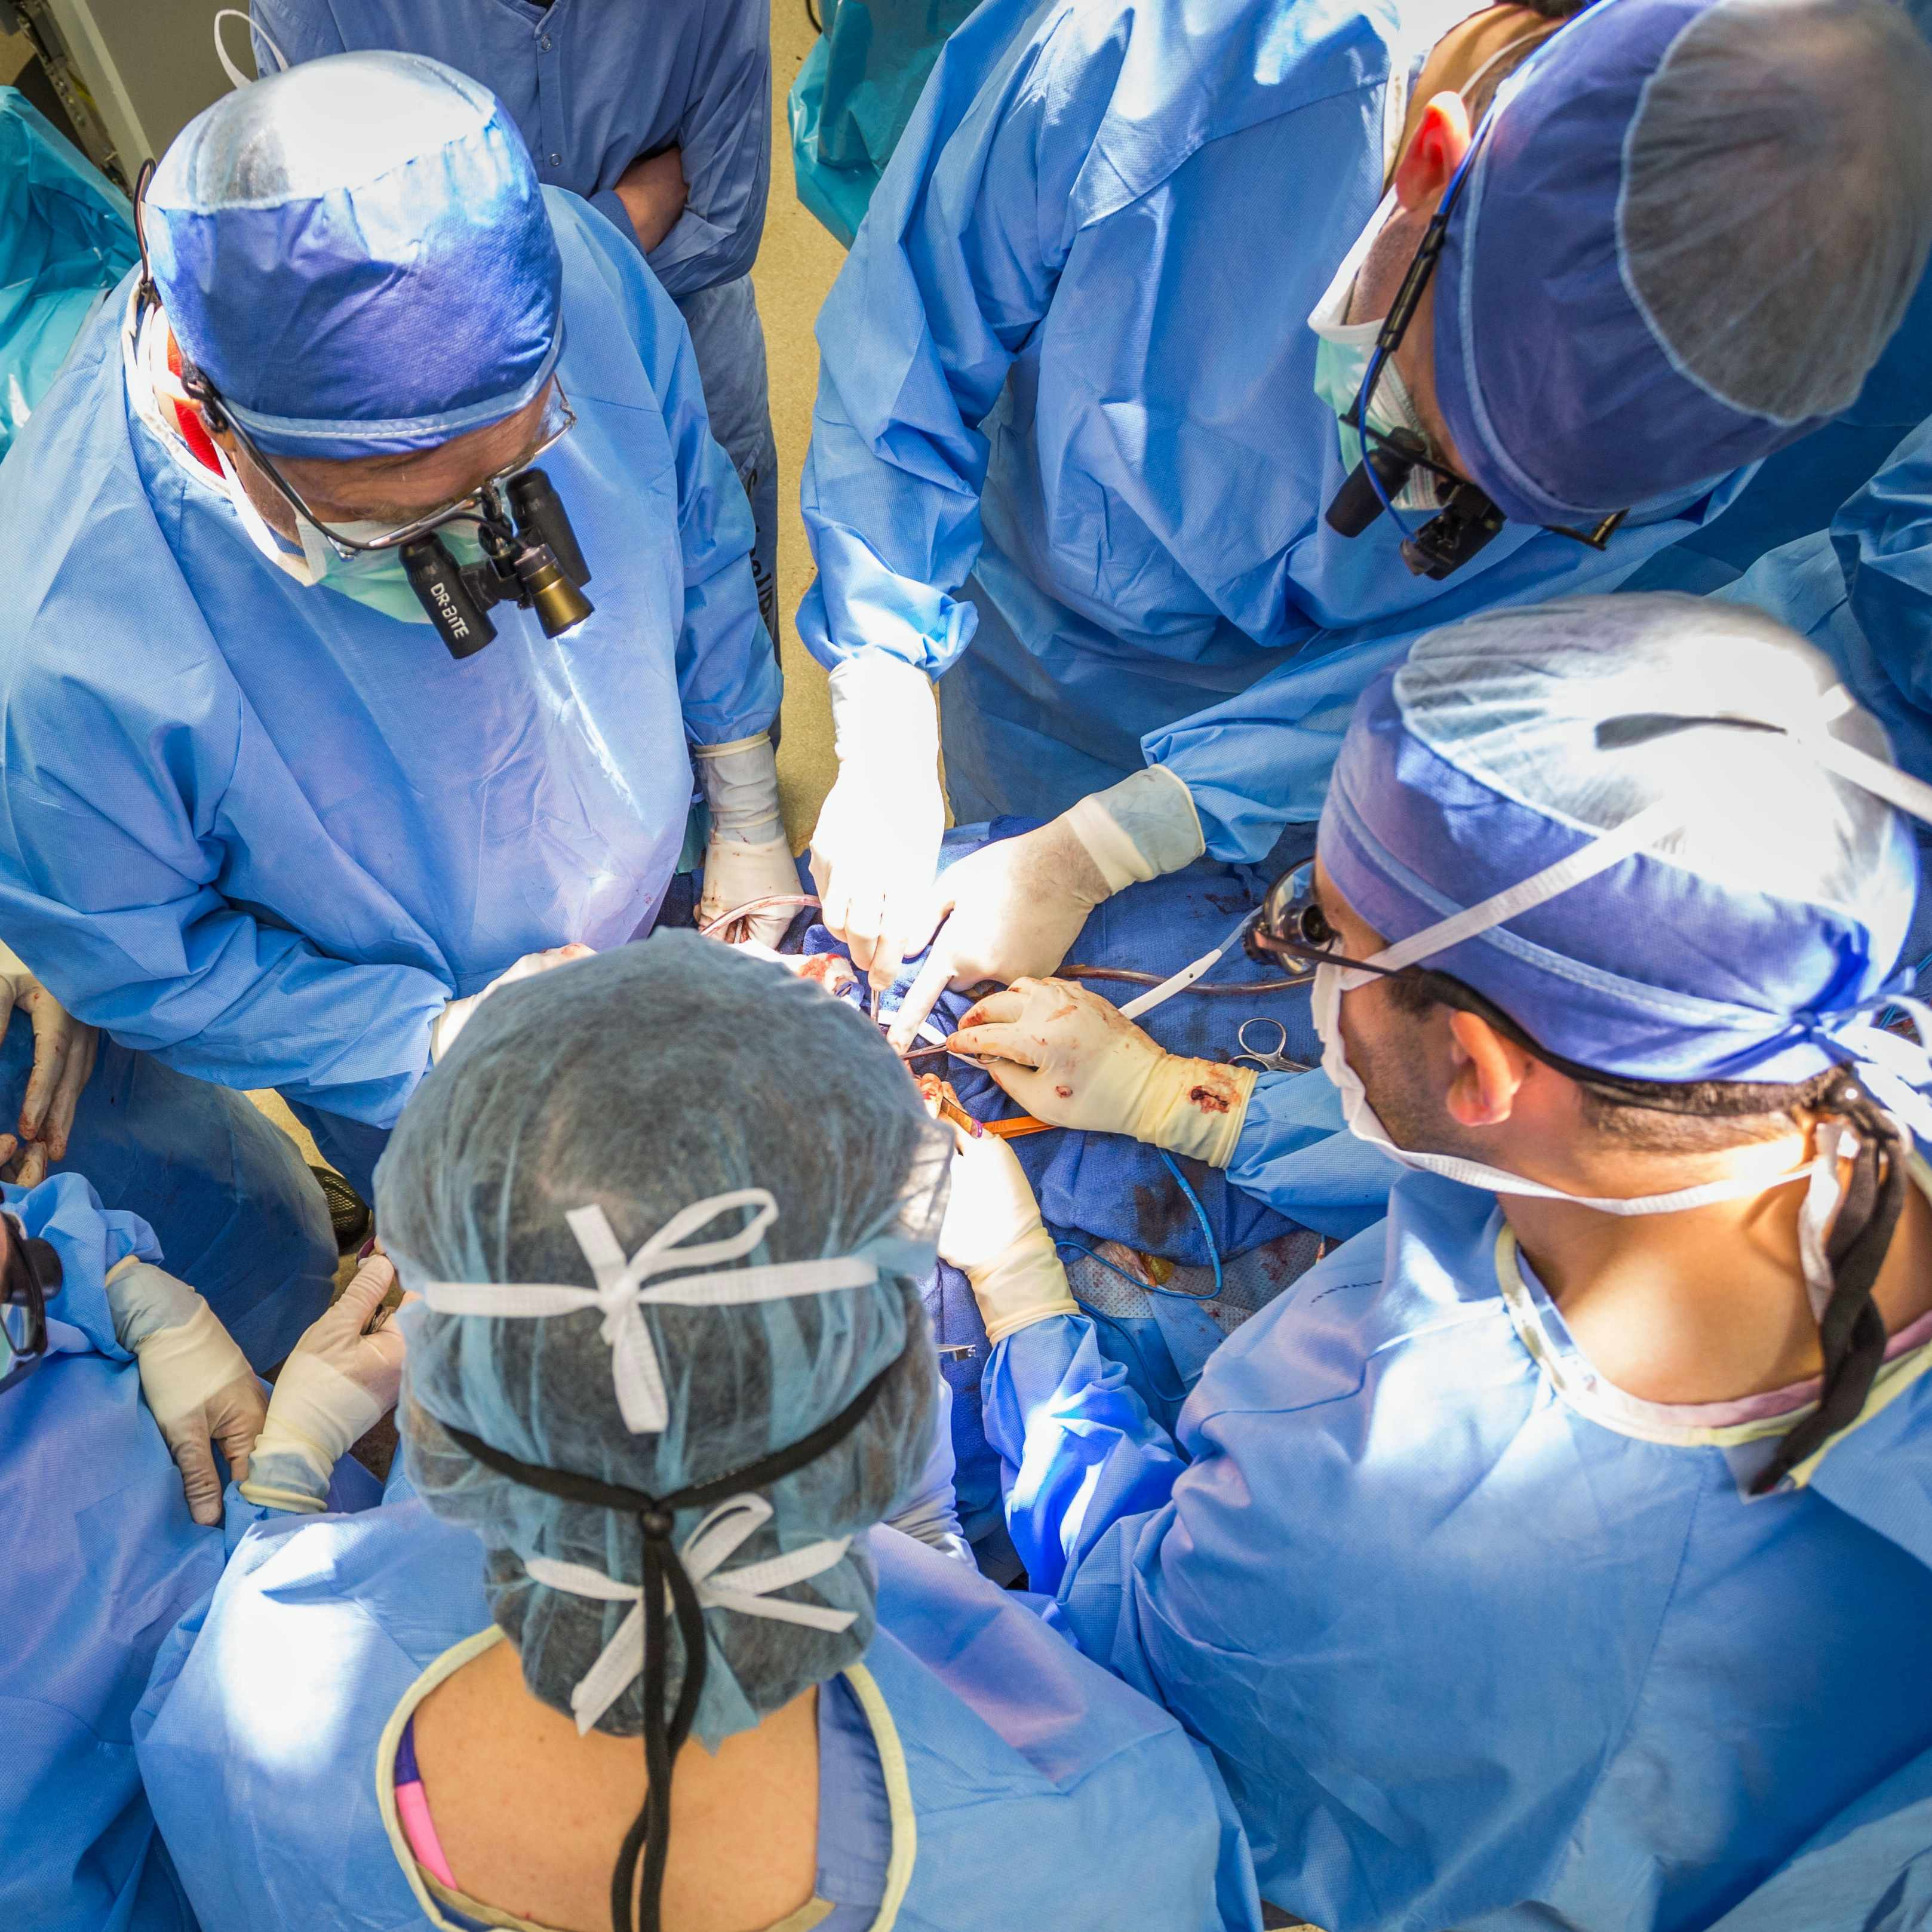 patient on operating table with surgeons surrounding patient